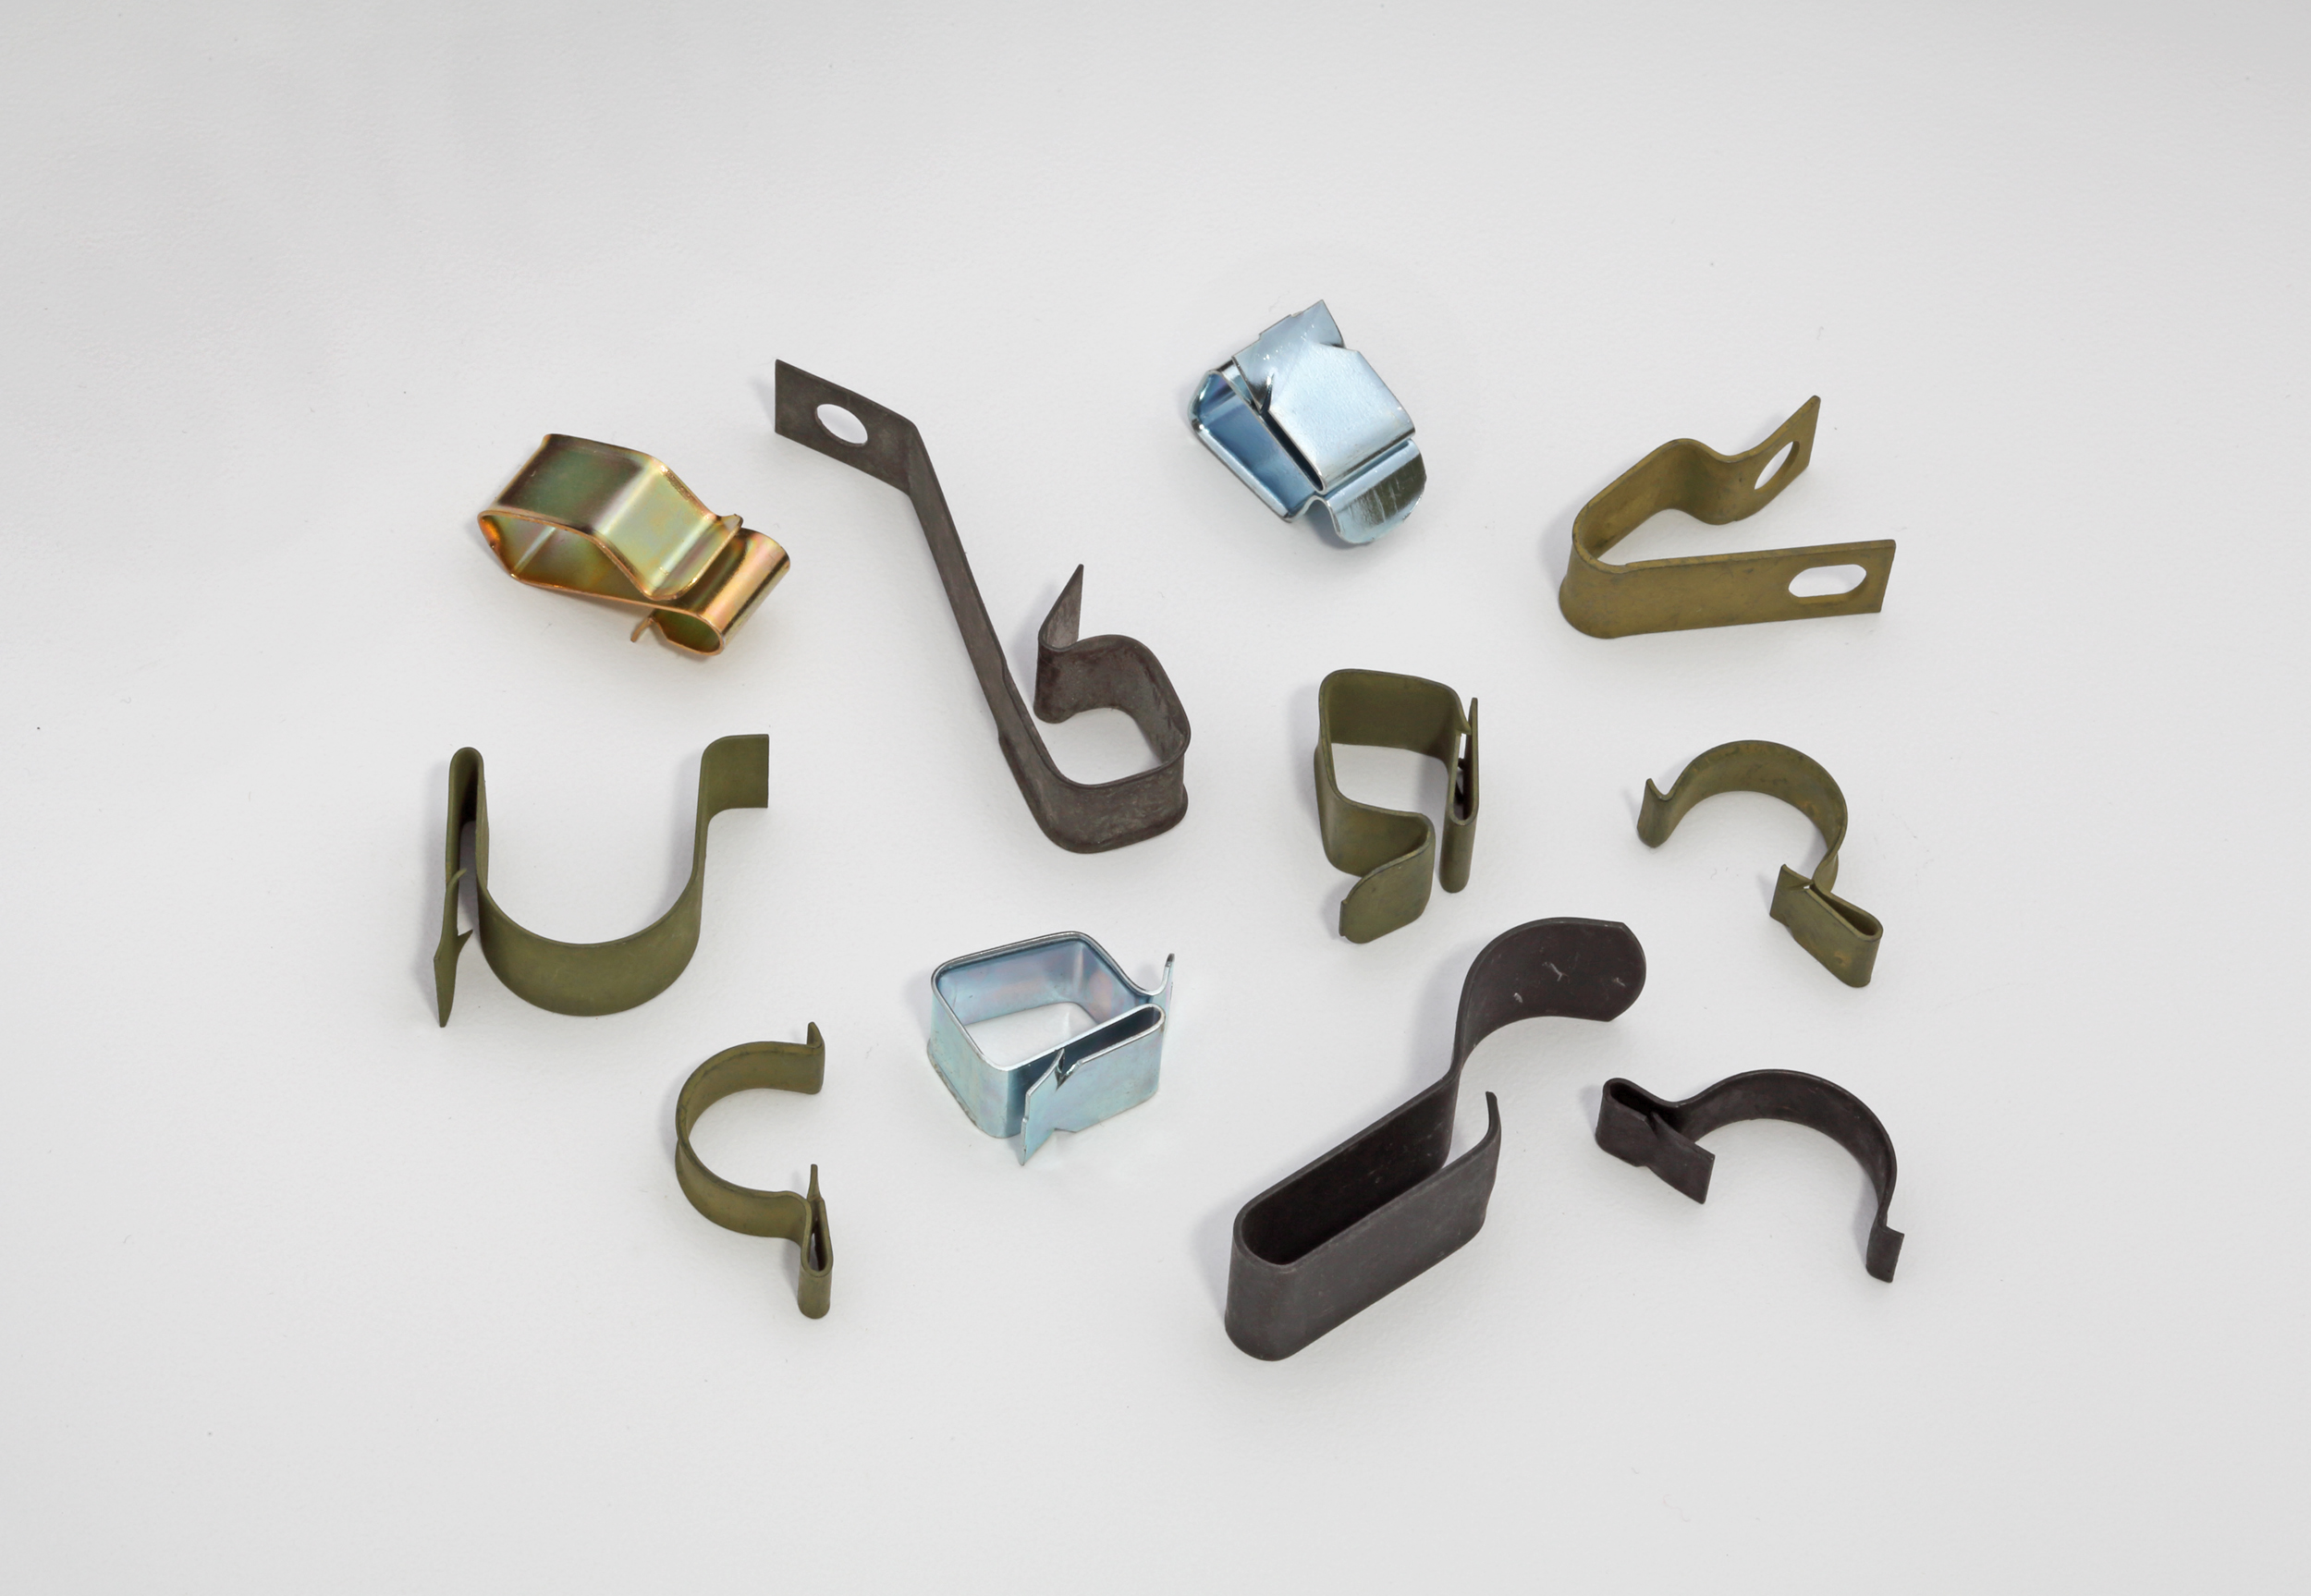 Wire, harness and cable clips